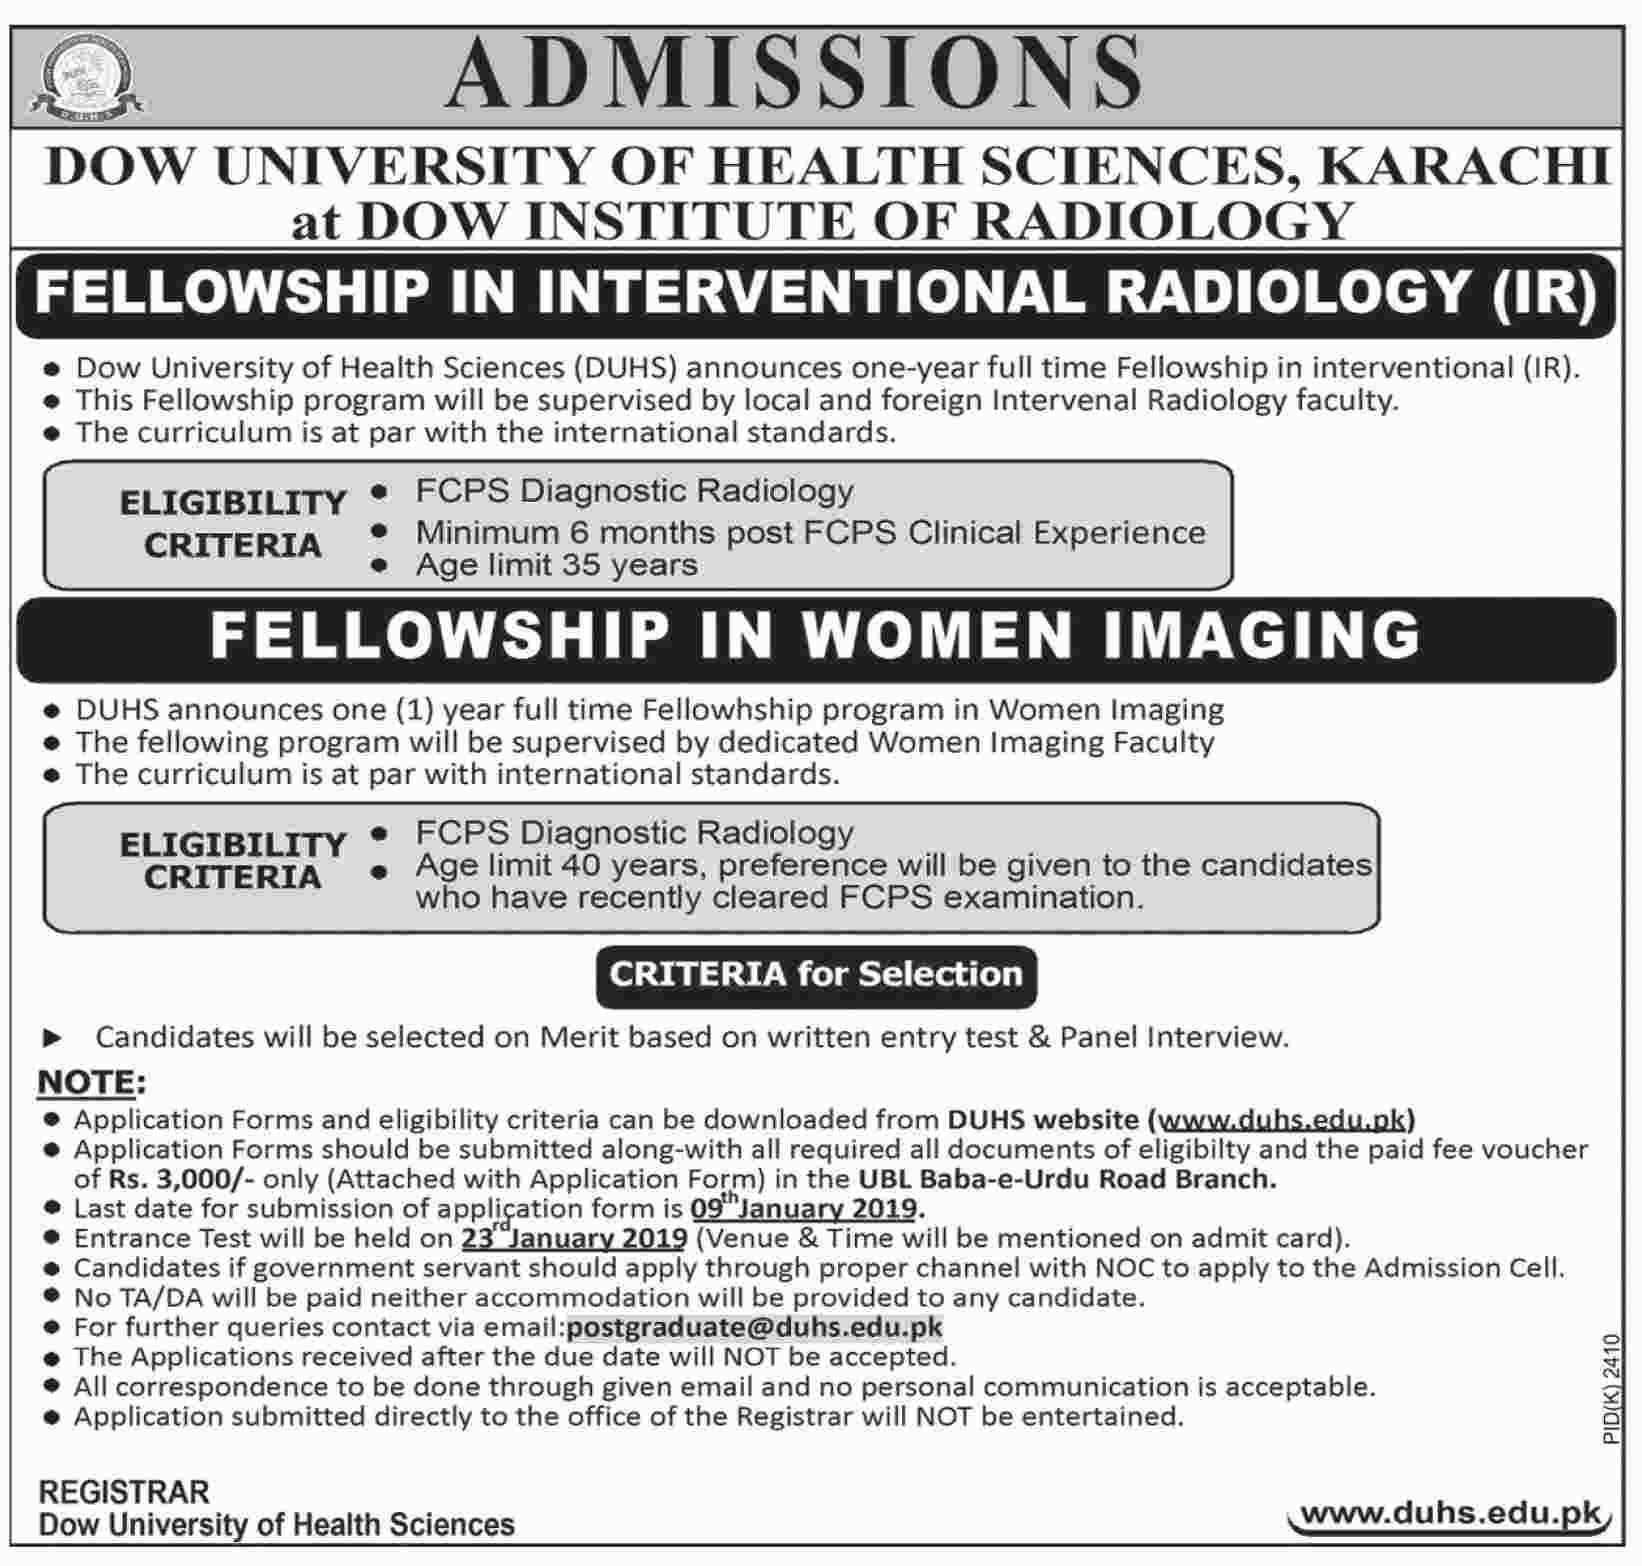 Fellowship in International Radiology (IR) - Dow University of Health Sciences